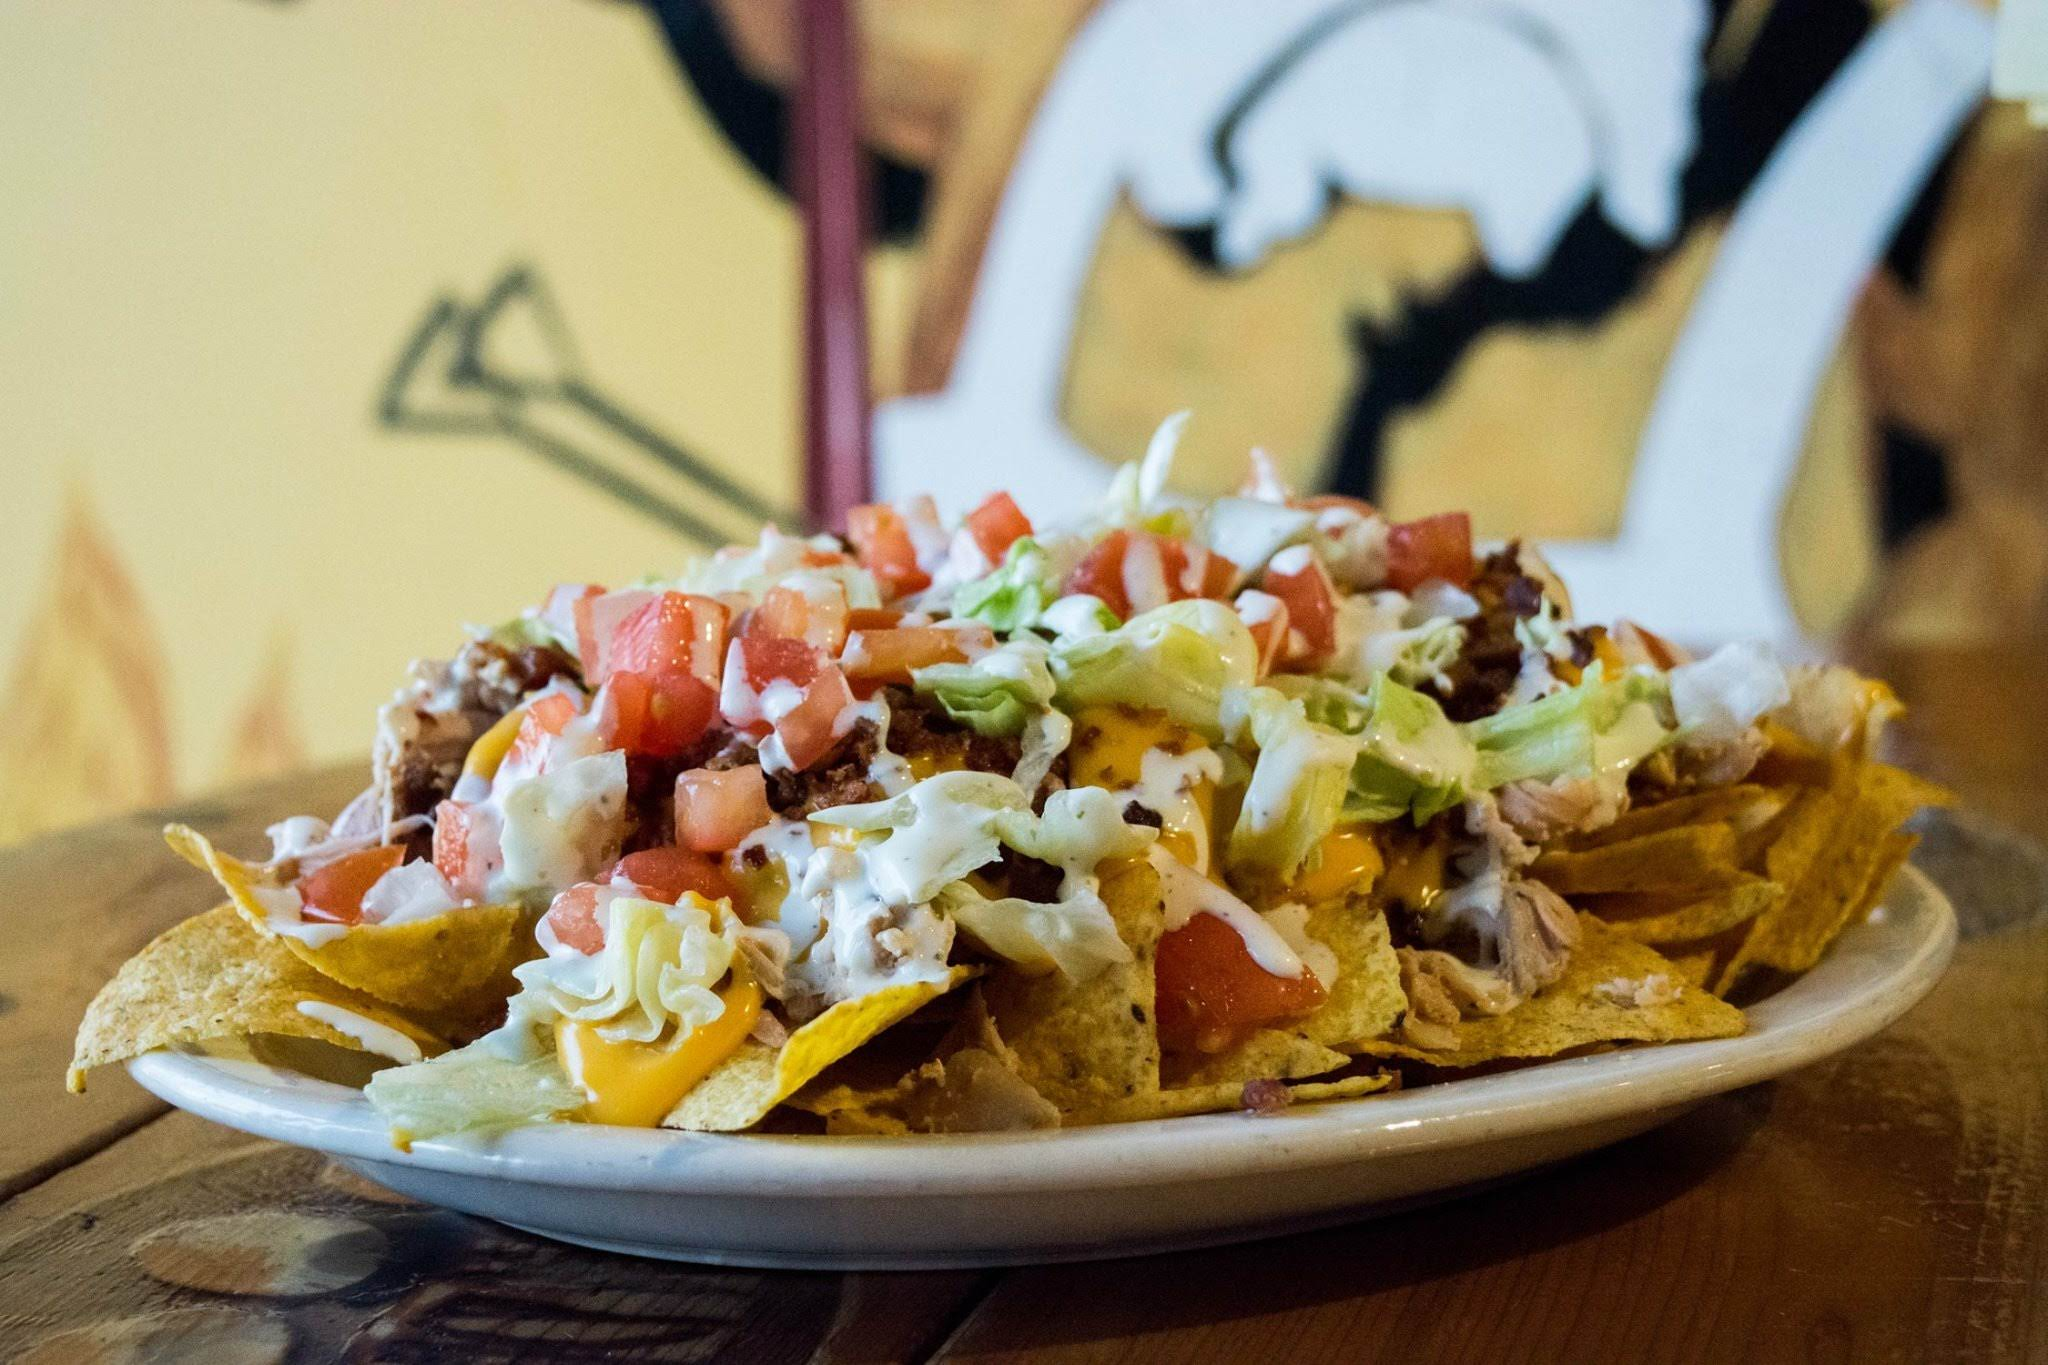 A plate of nachos with red tomatoes, cheese, lettuce, and pulled pork